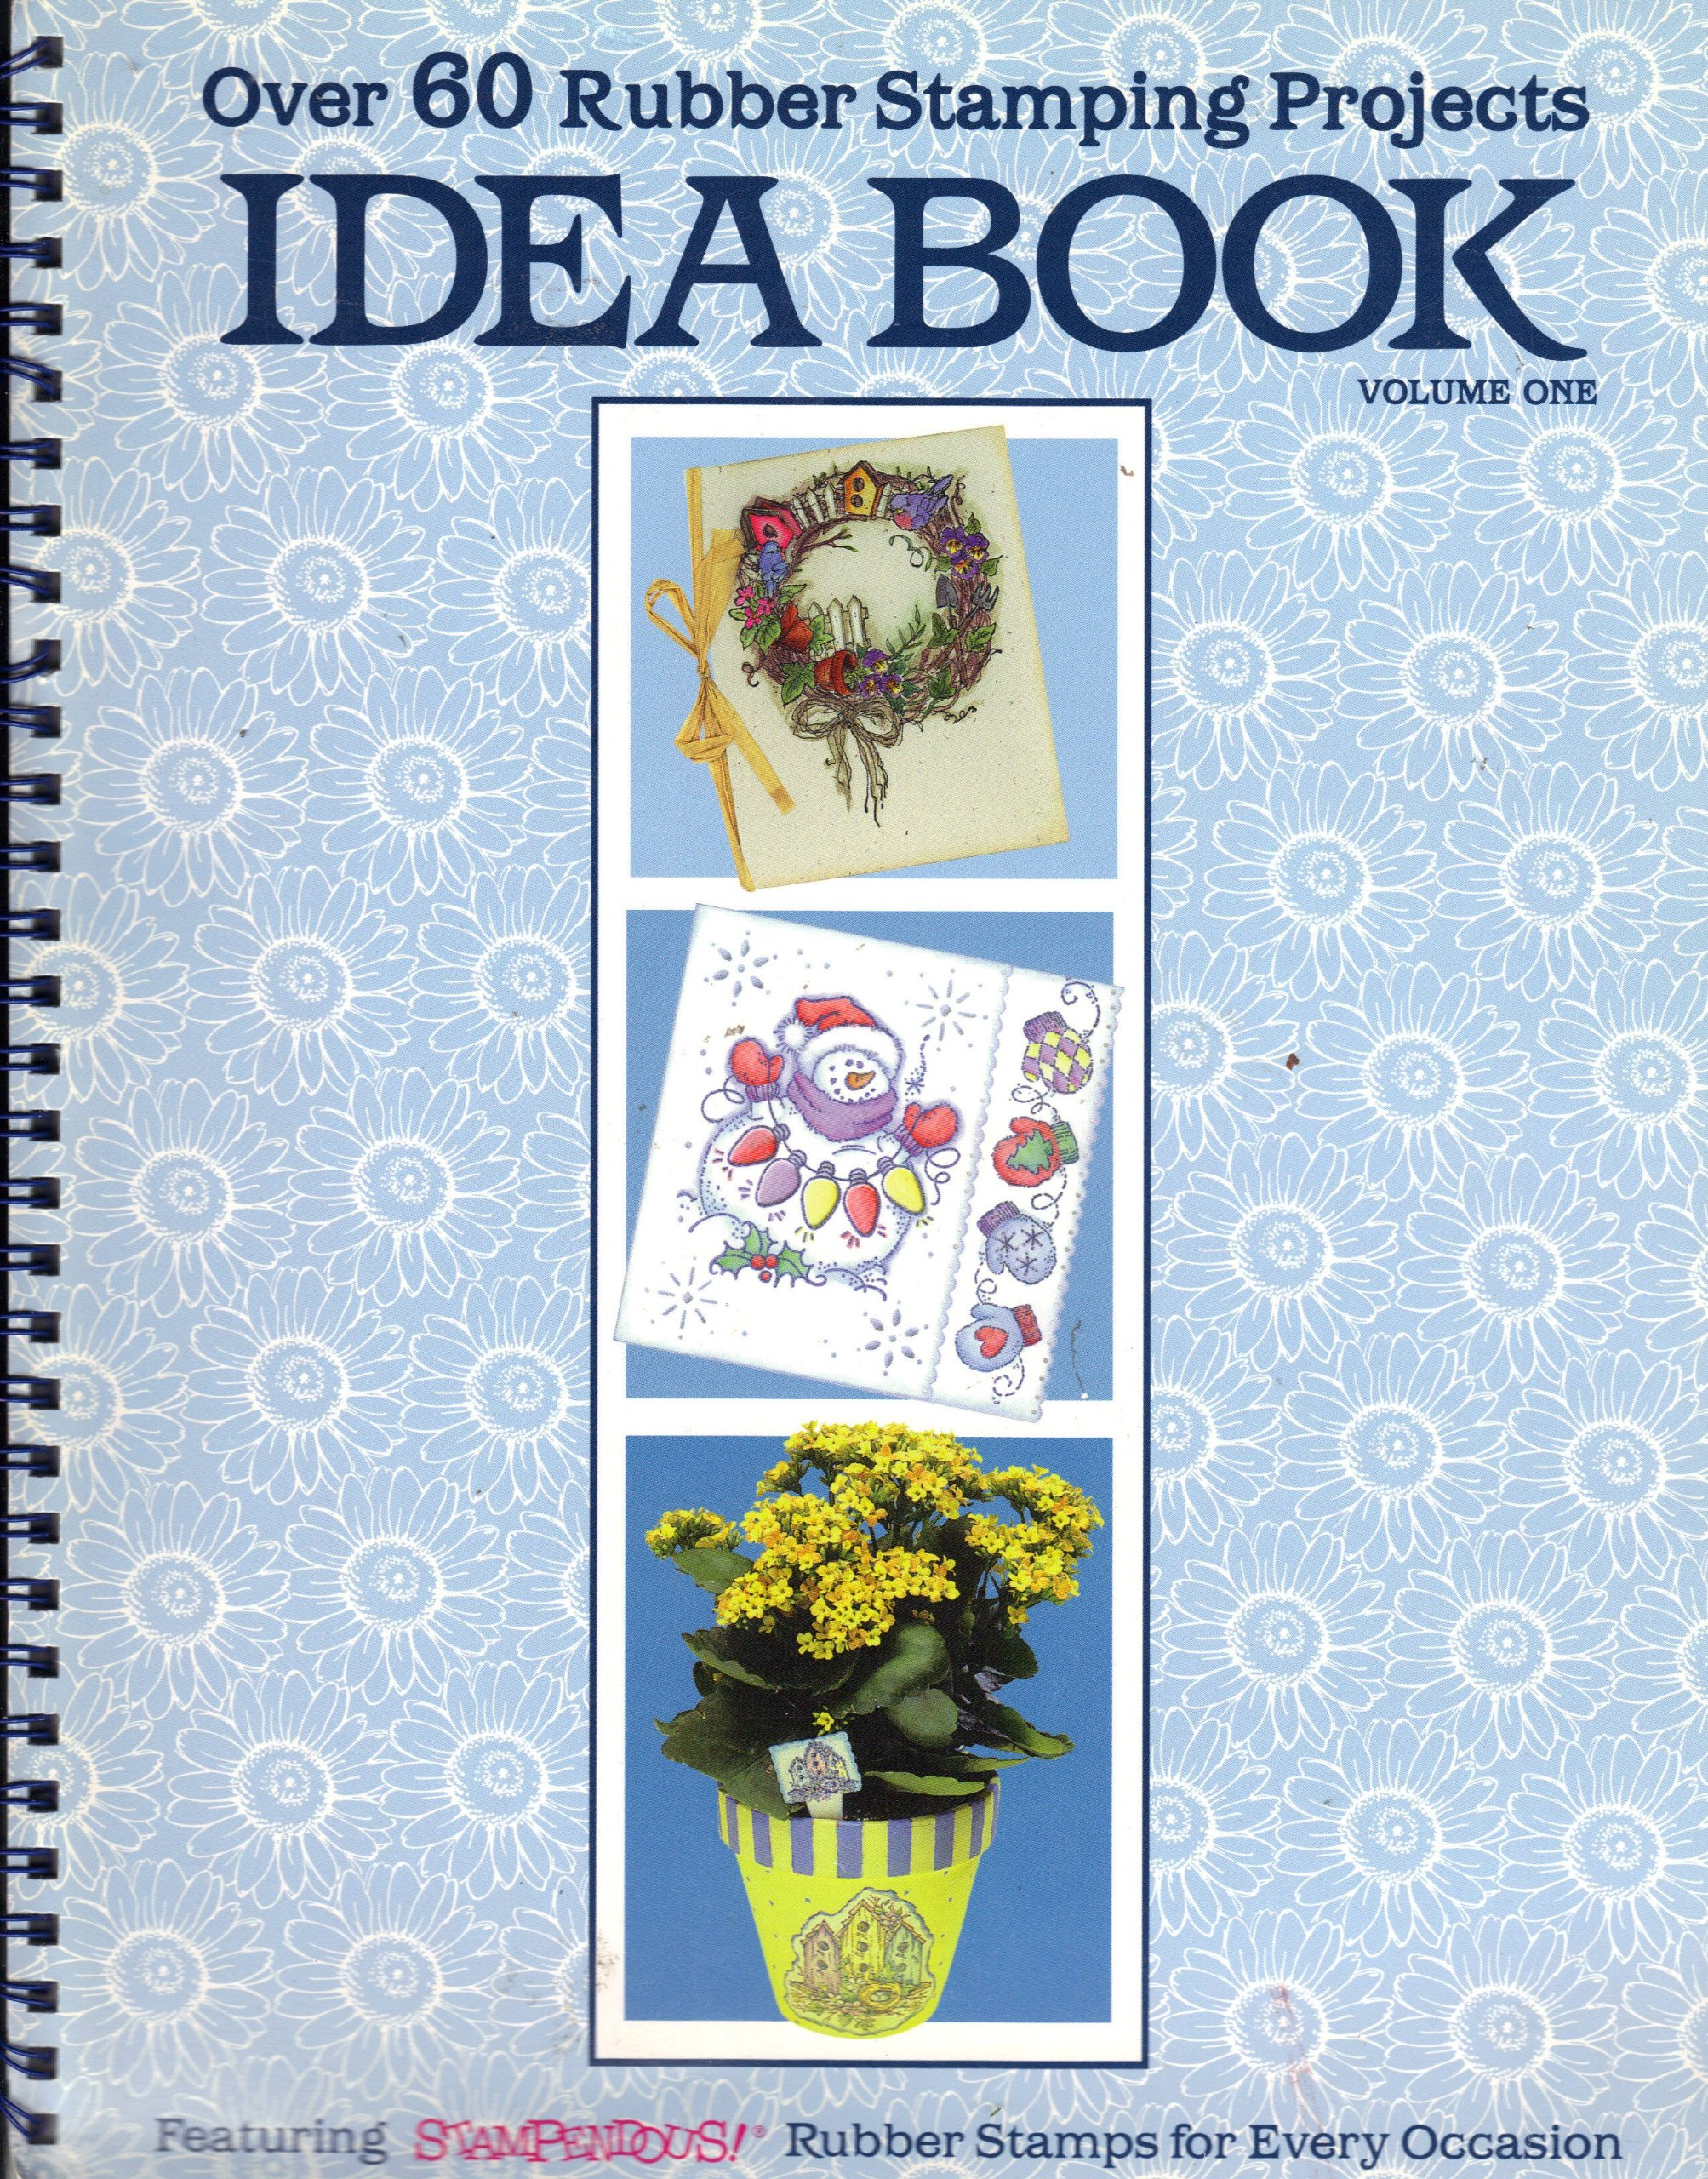 Over 60 Rubber Stamping Projects Idea Book (Volume One)